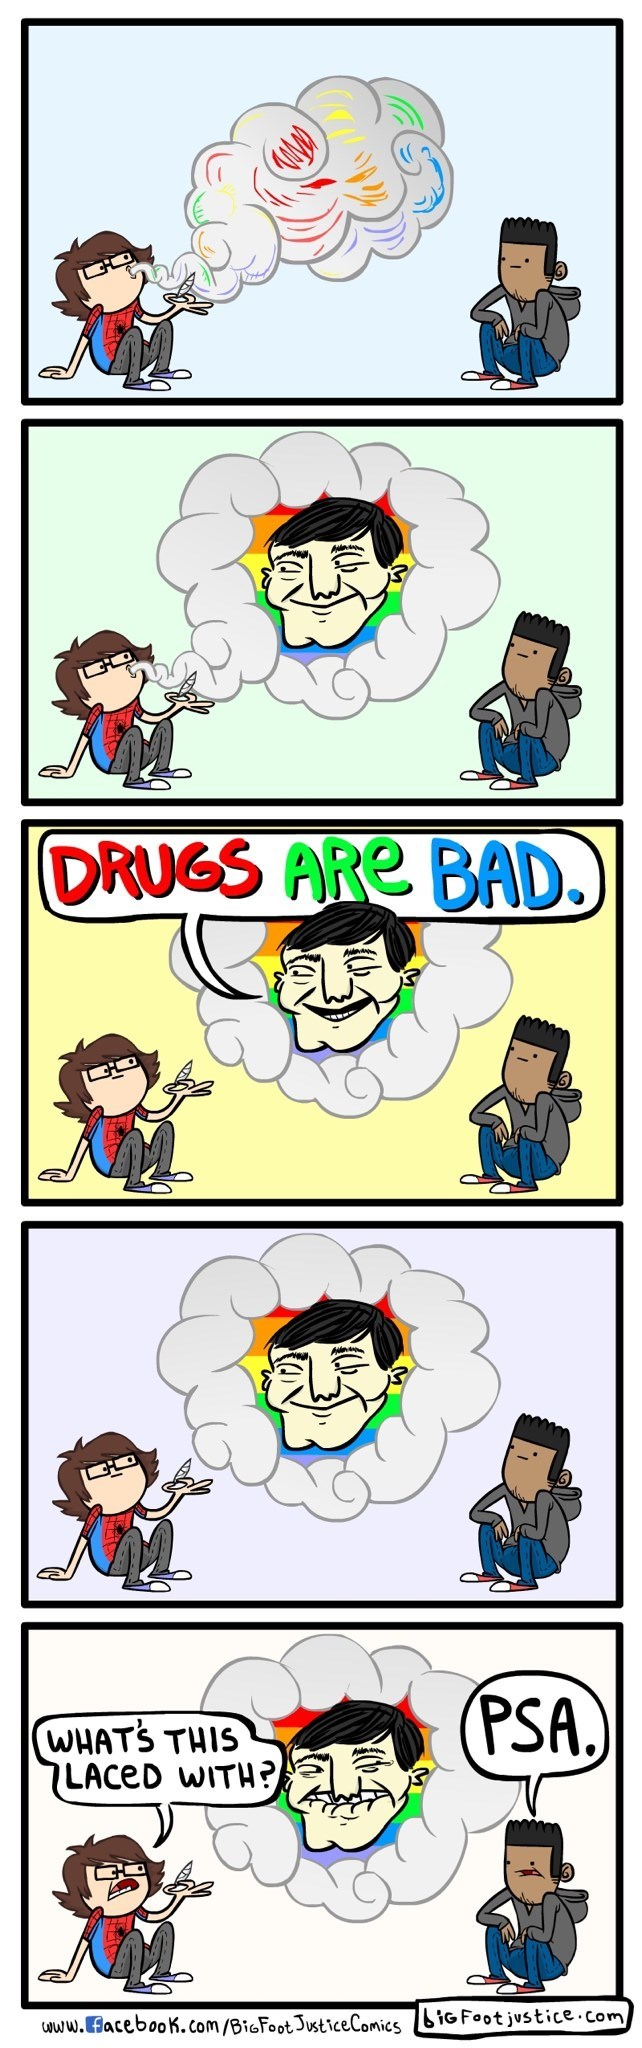 meme - Cartoon - DRUGS ARE BAD. (PSA.) WHATS THIS LACED WITH? www.acebooK. Com/BioFootJusticeComicsiG Foot justice.Com